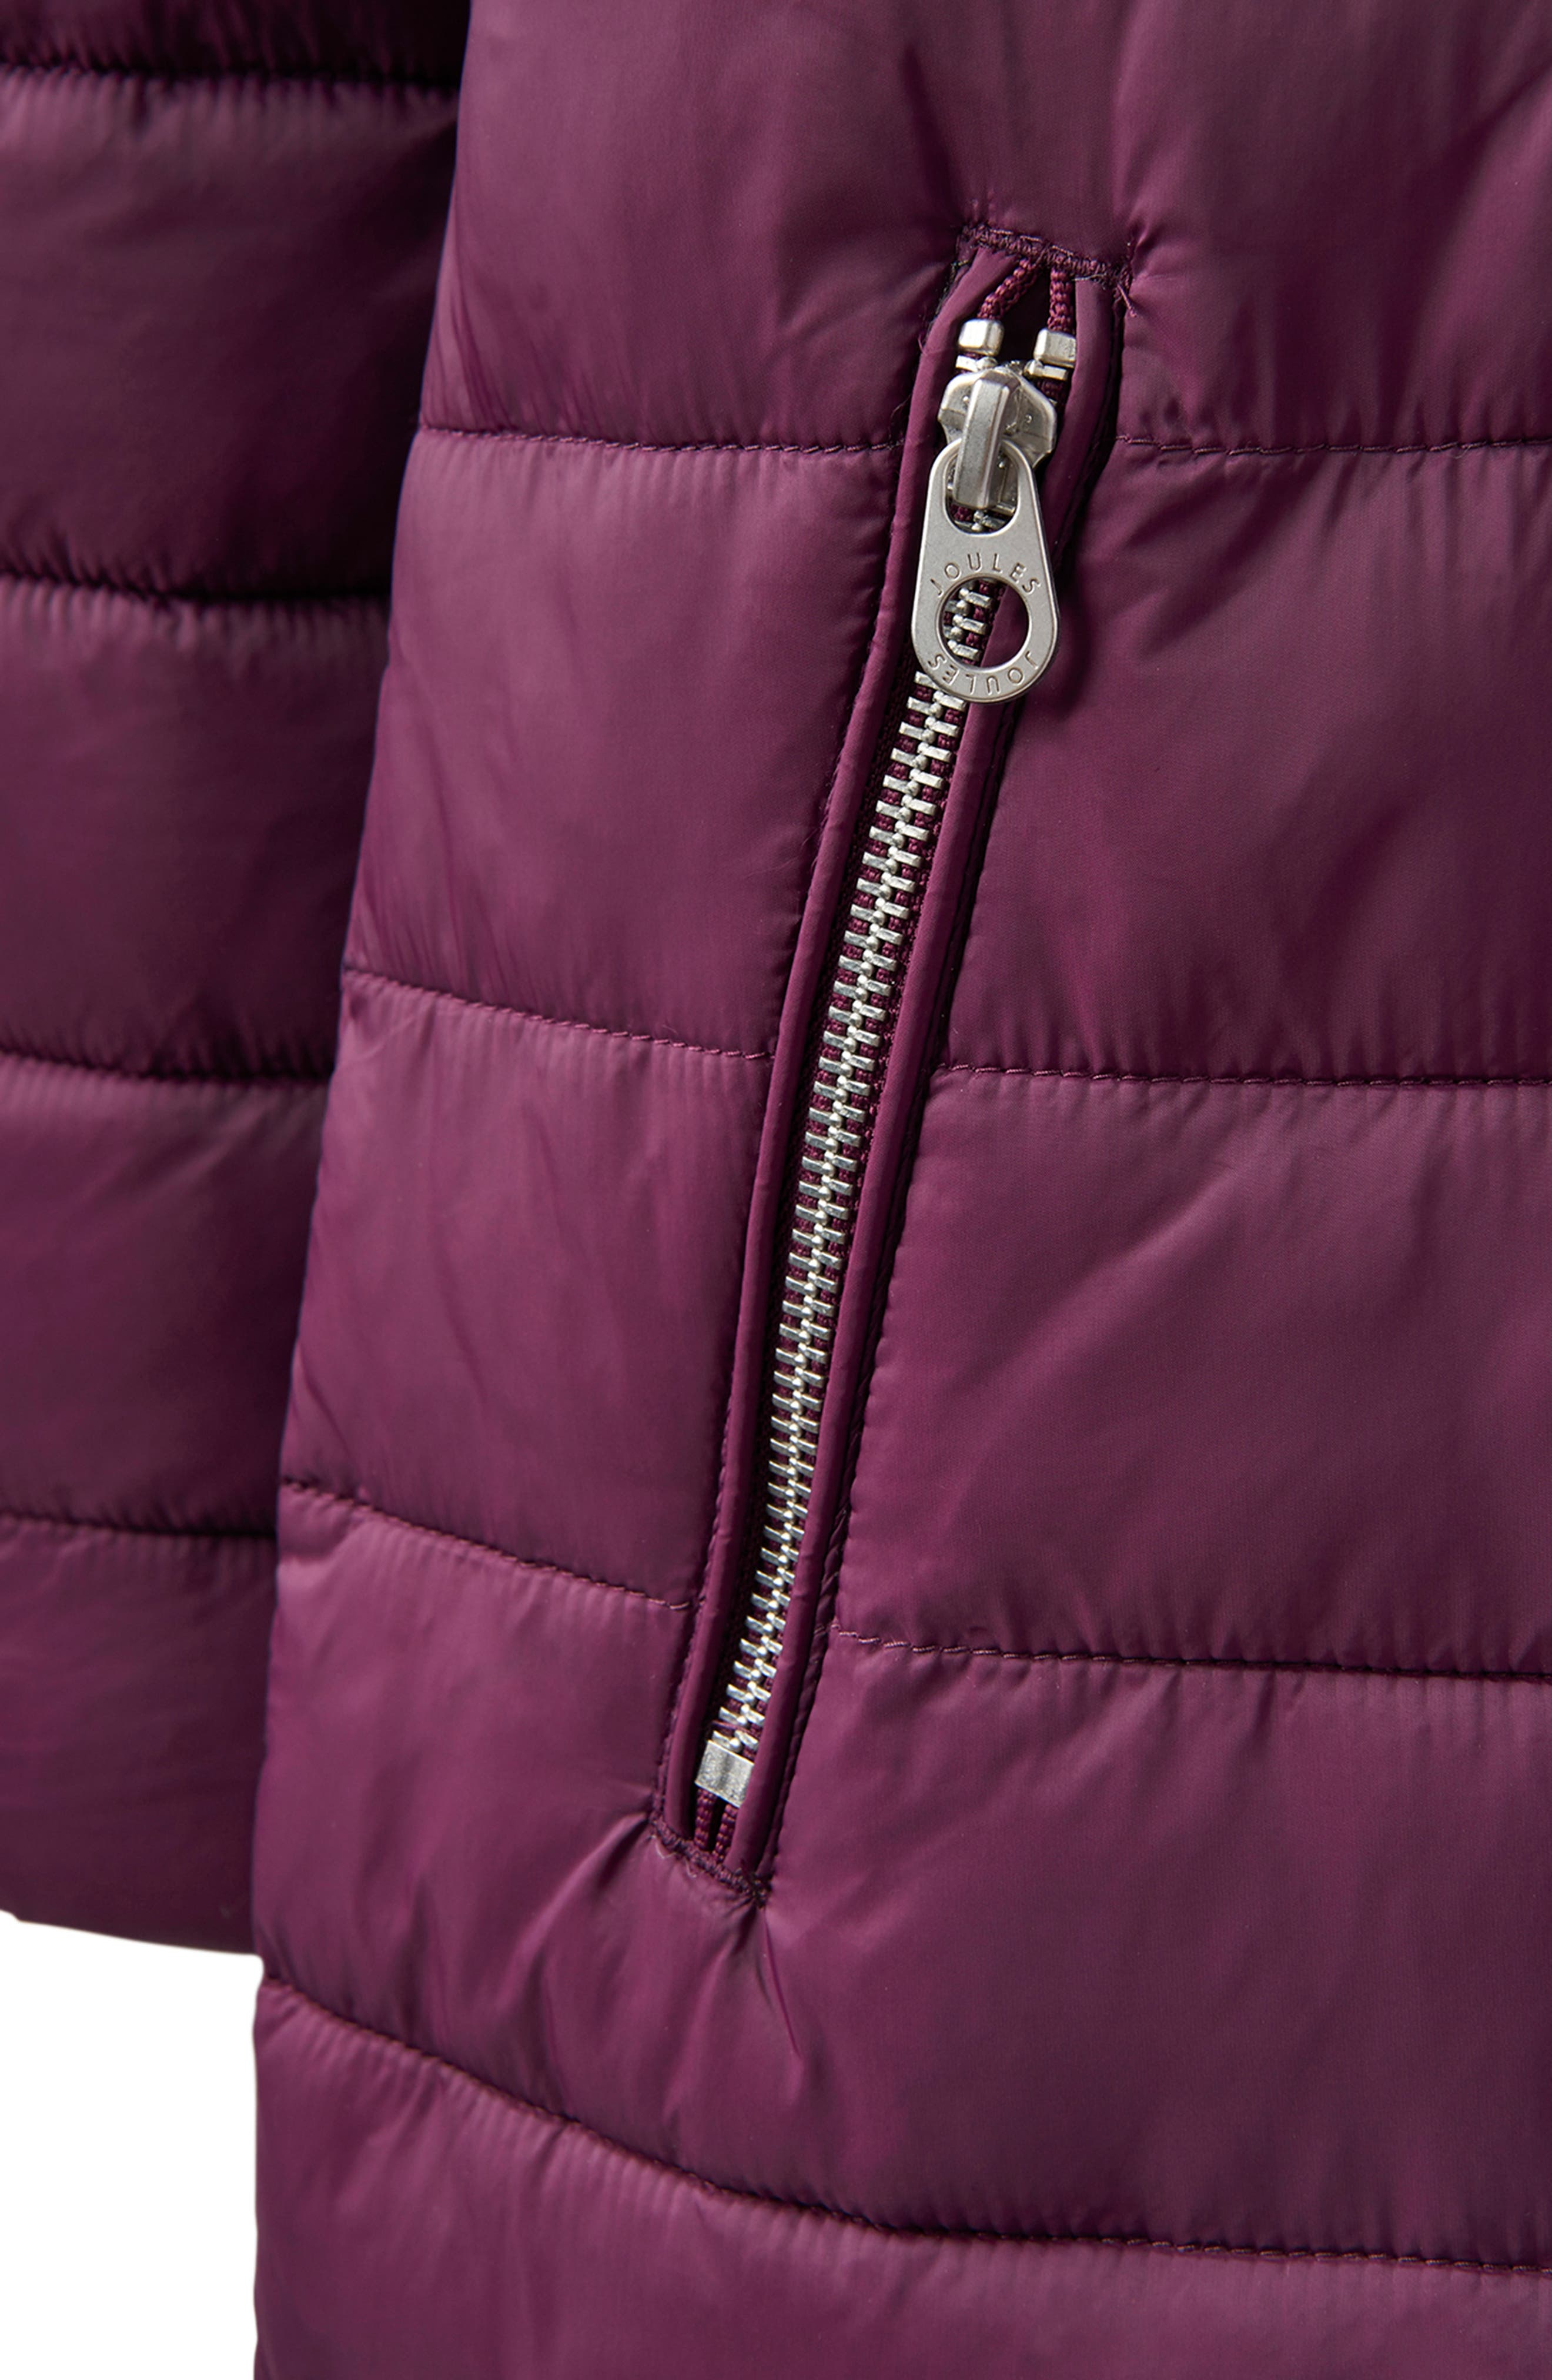 JOULES,                             Heathcote Two-Tone Puffer Jacket,                             Alternate thumbnail 8, color,                             BURGUNDY